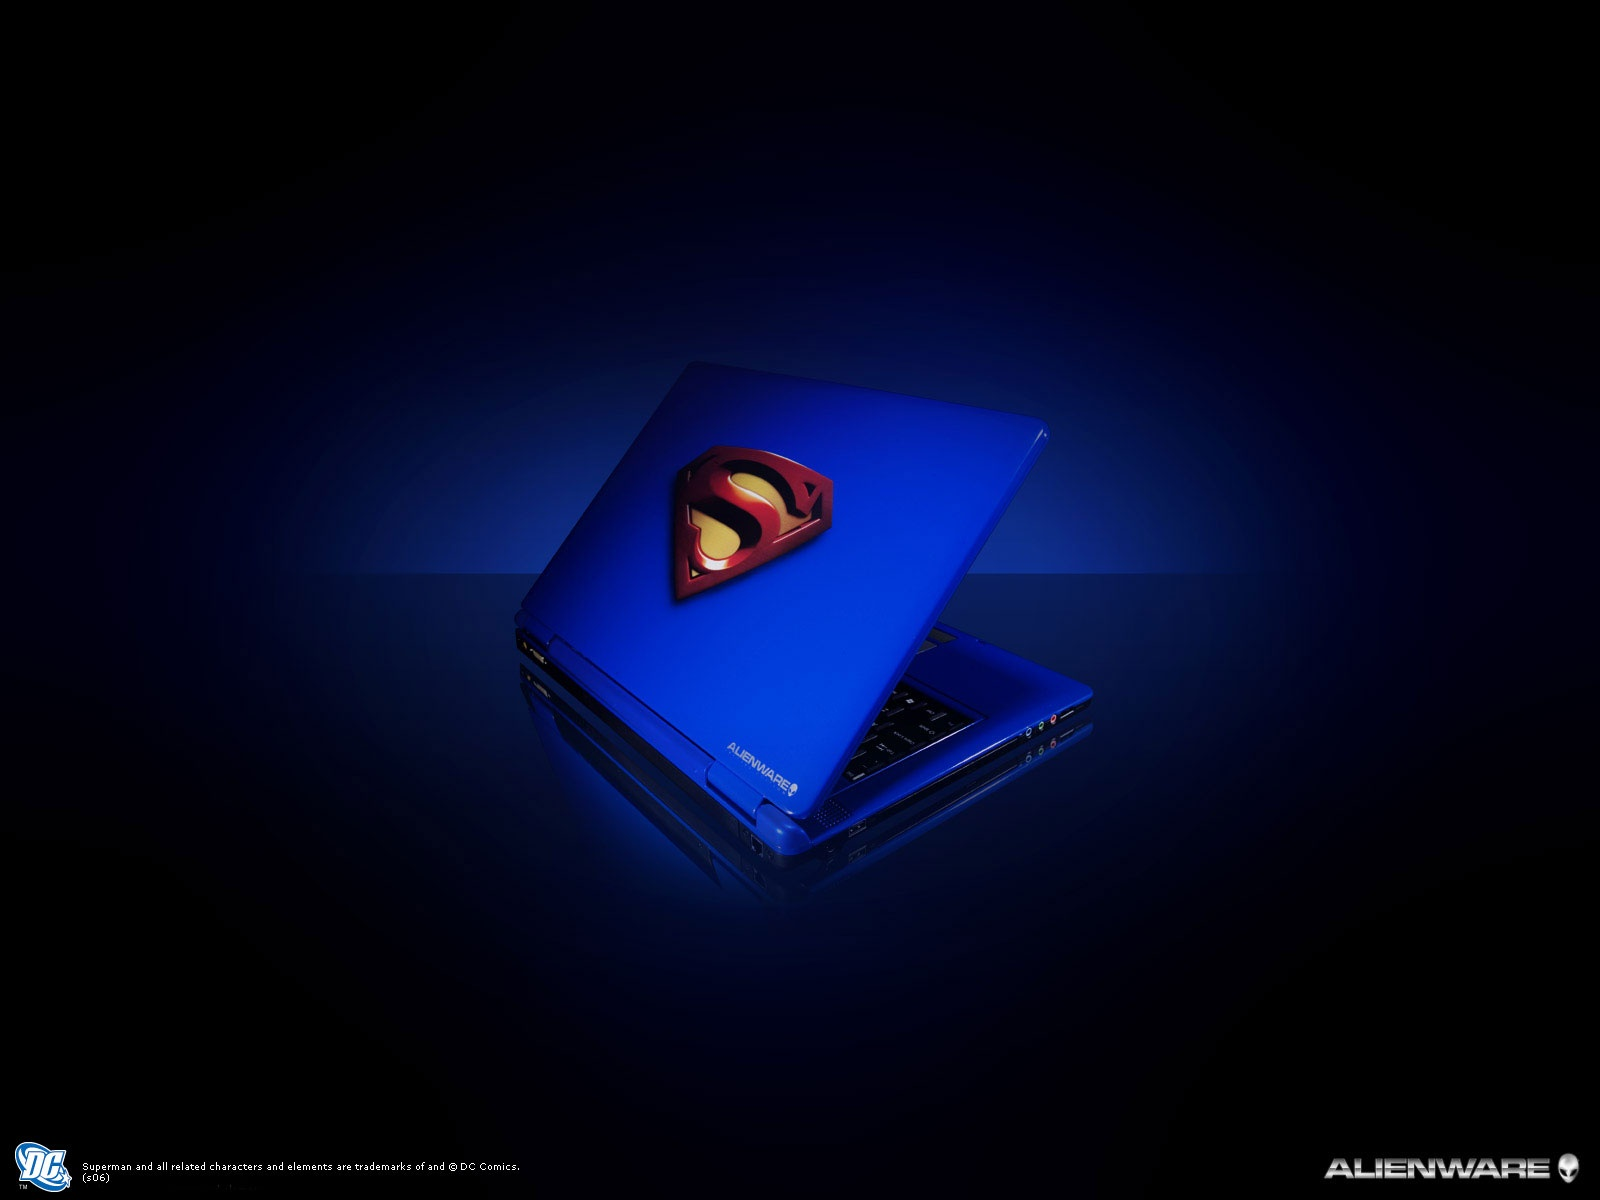 Animated Lion Wallpaper Superman Notebook Wallpapers Superman Notebook Stock Photos